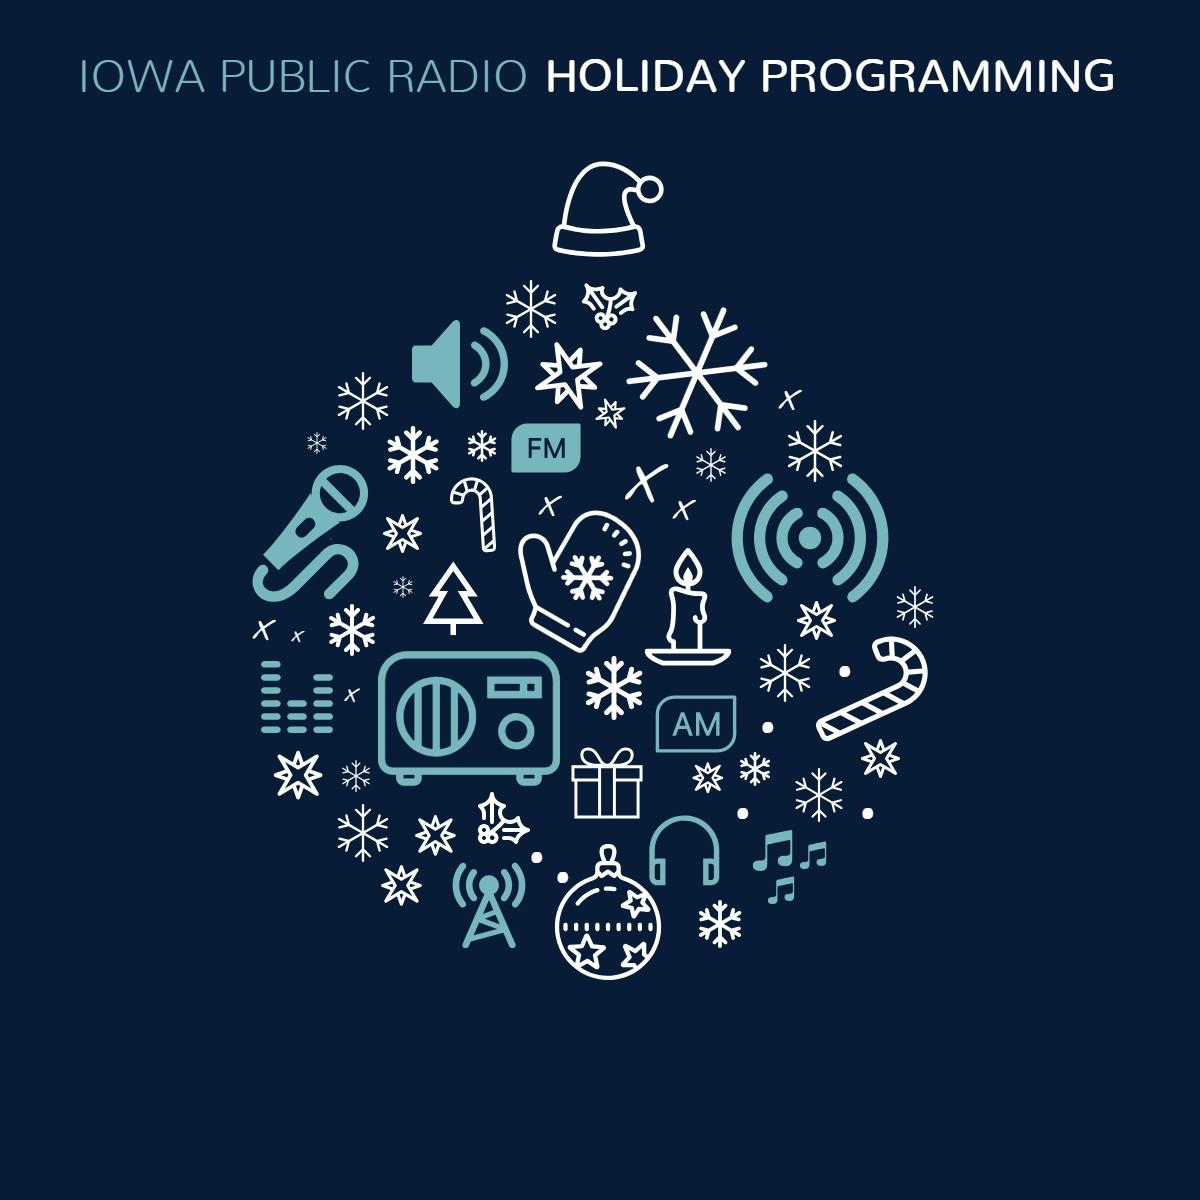 ipr holiday schedule 2018 iowa public radio